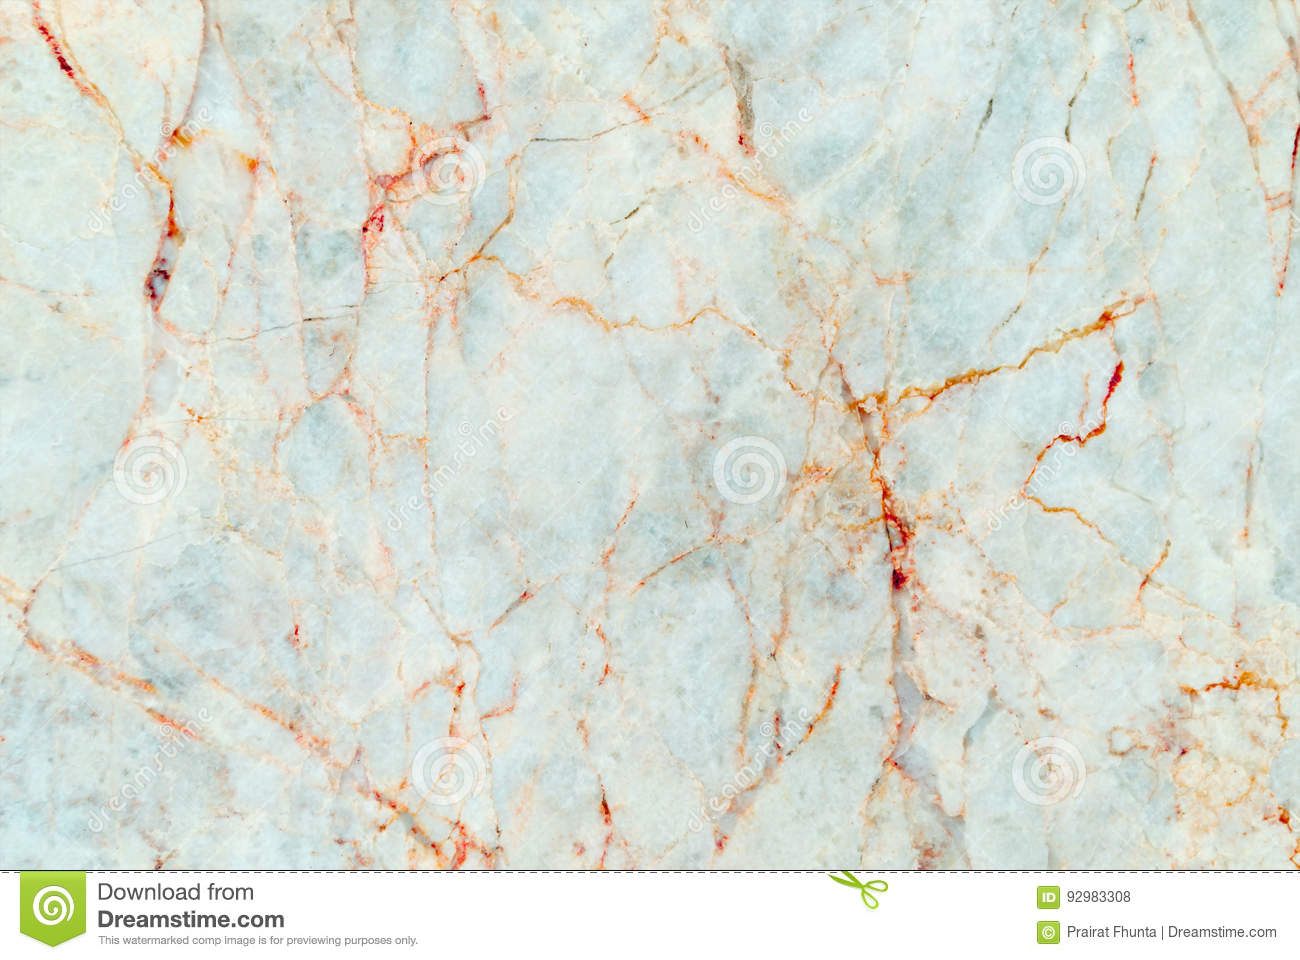 Marble texture with lots of bold contrasting veining